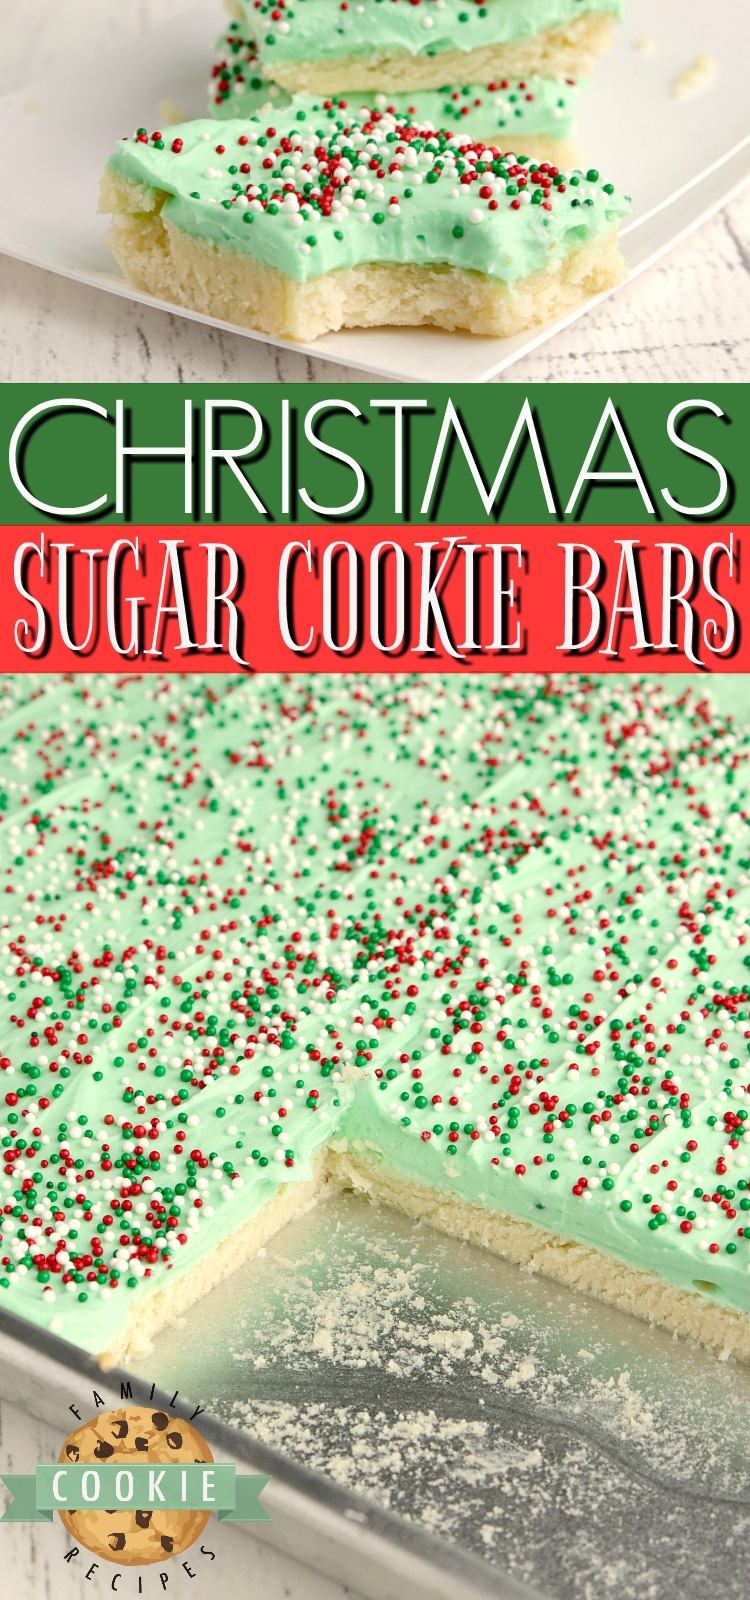 Christmas Sugar Cookie Bars are thick, soft and absolutely amazing! Best sugar cookie bar recipe that I've ever tried! via @familycookierecipes